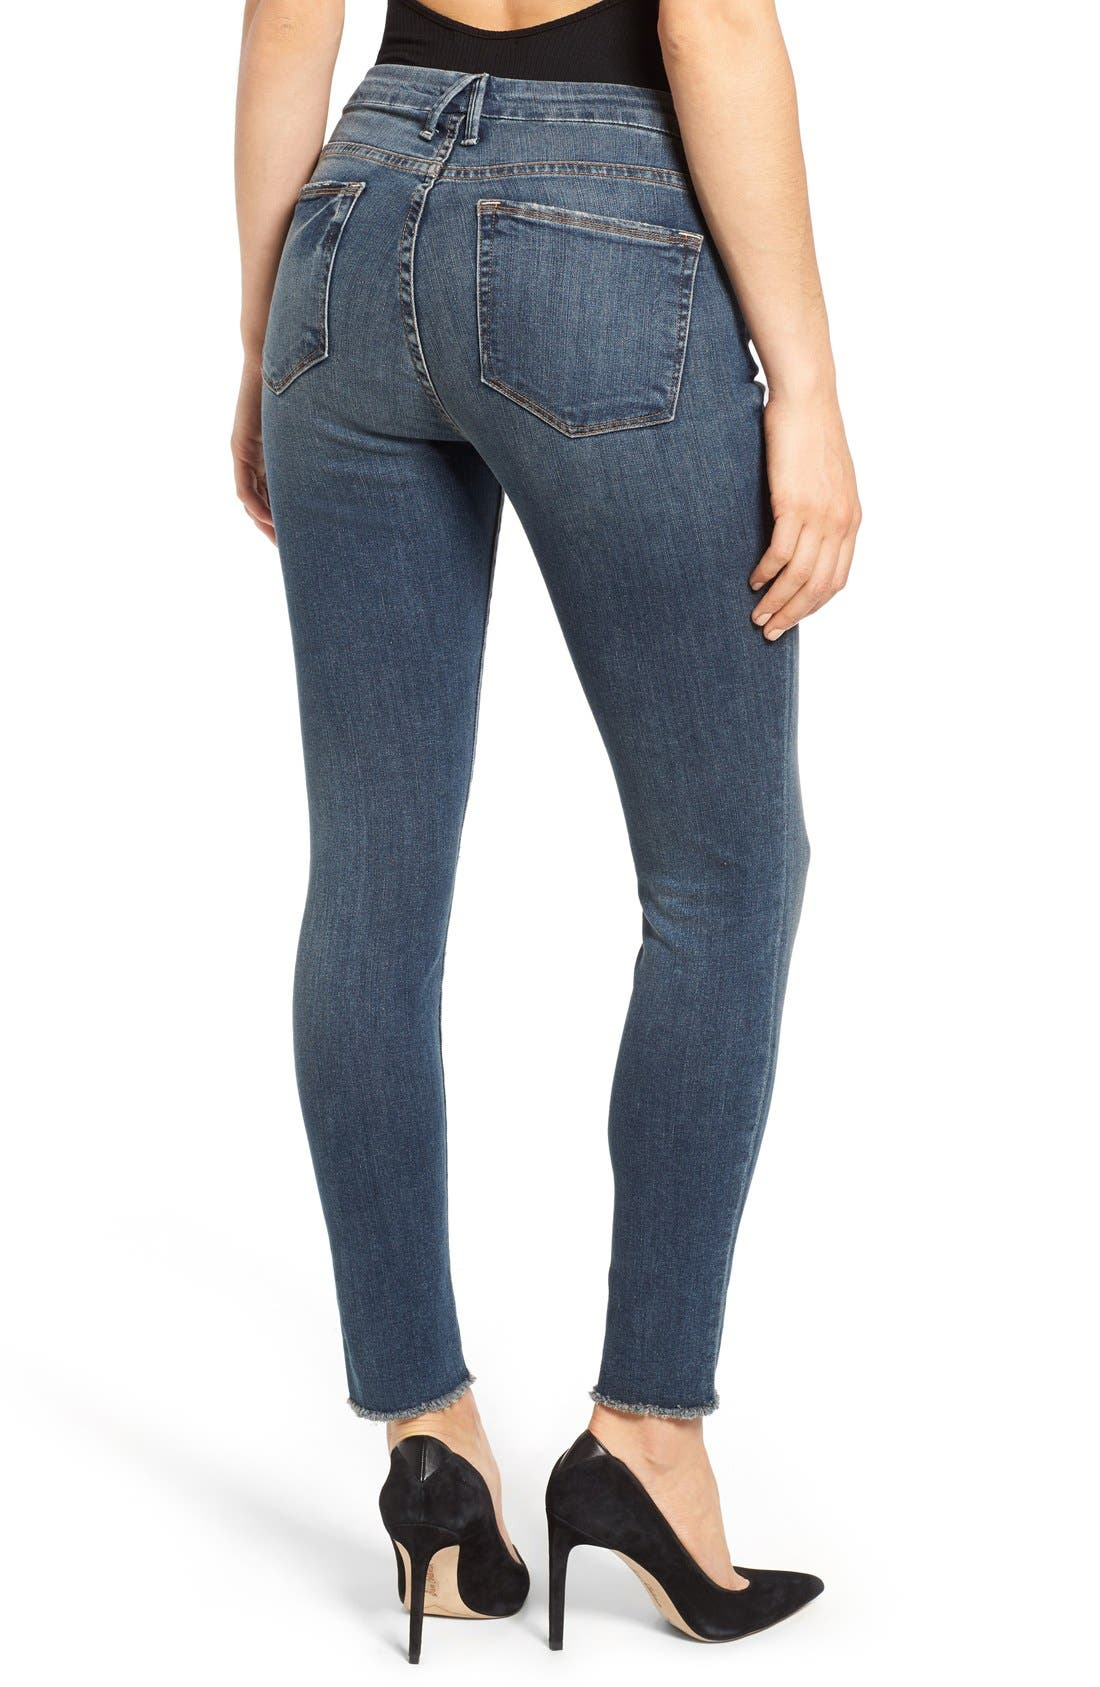 Alternate Image 2  - Good American Good Legs High Rise Skinny Jeans (Blue 005)